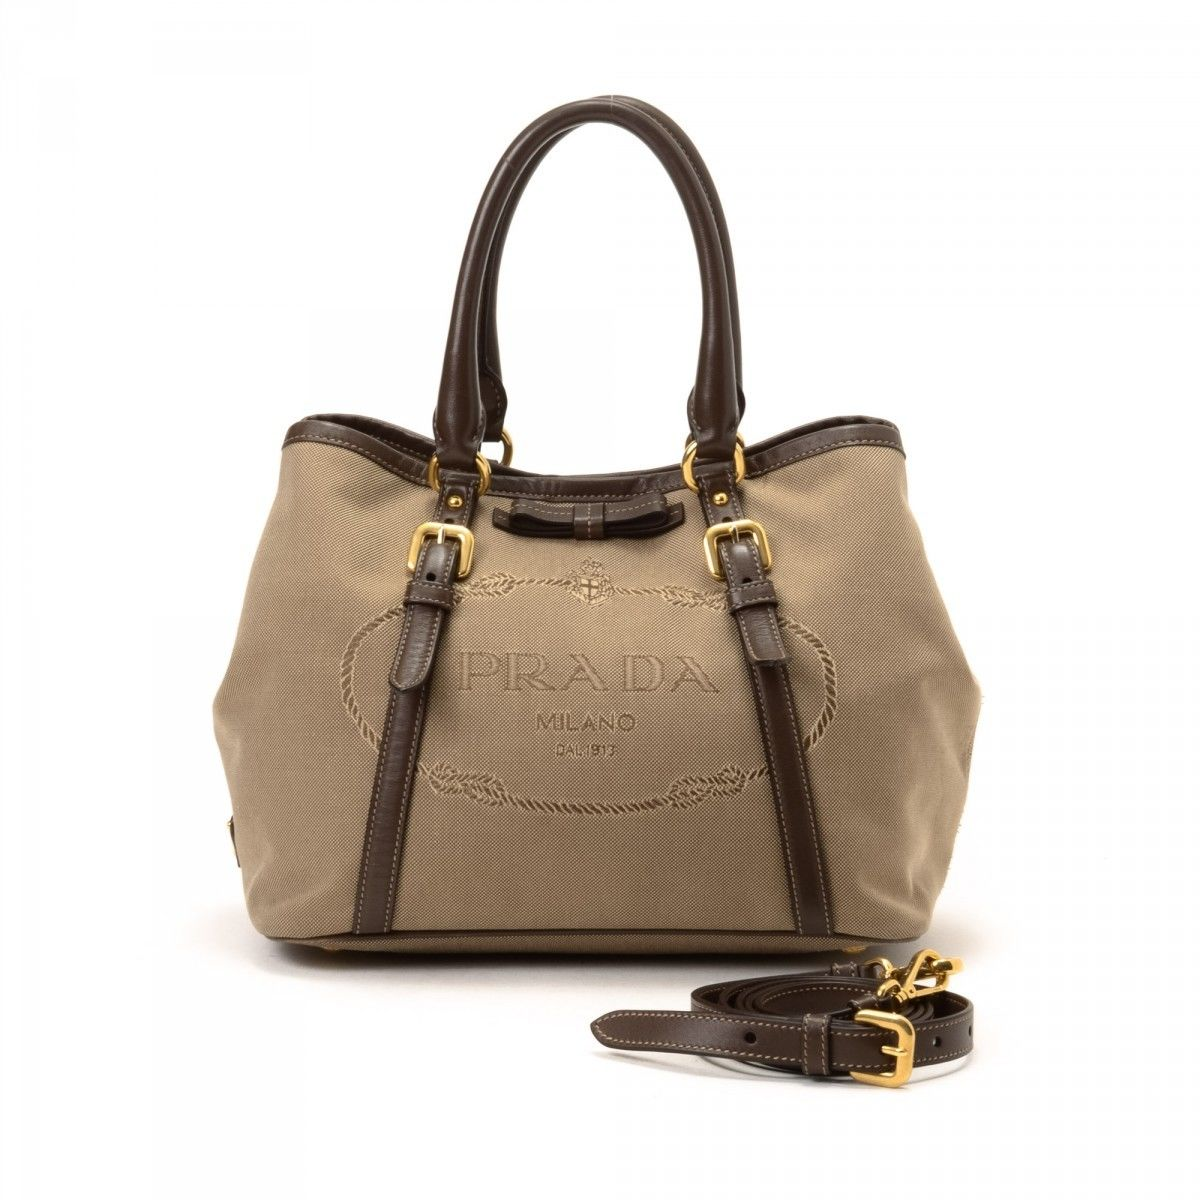 Prada Pre-owned - Beige Cloth Handbag zPFq6z0Uoz